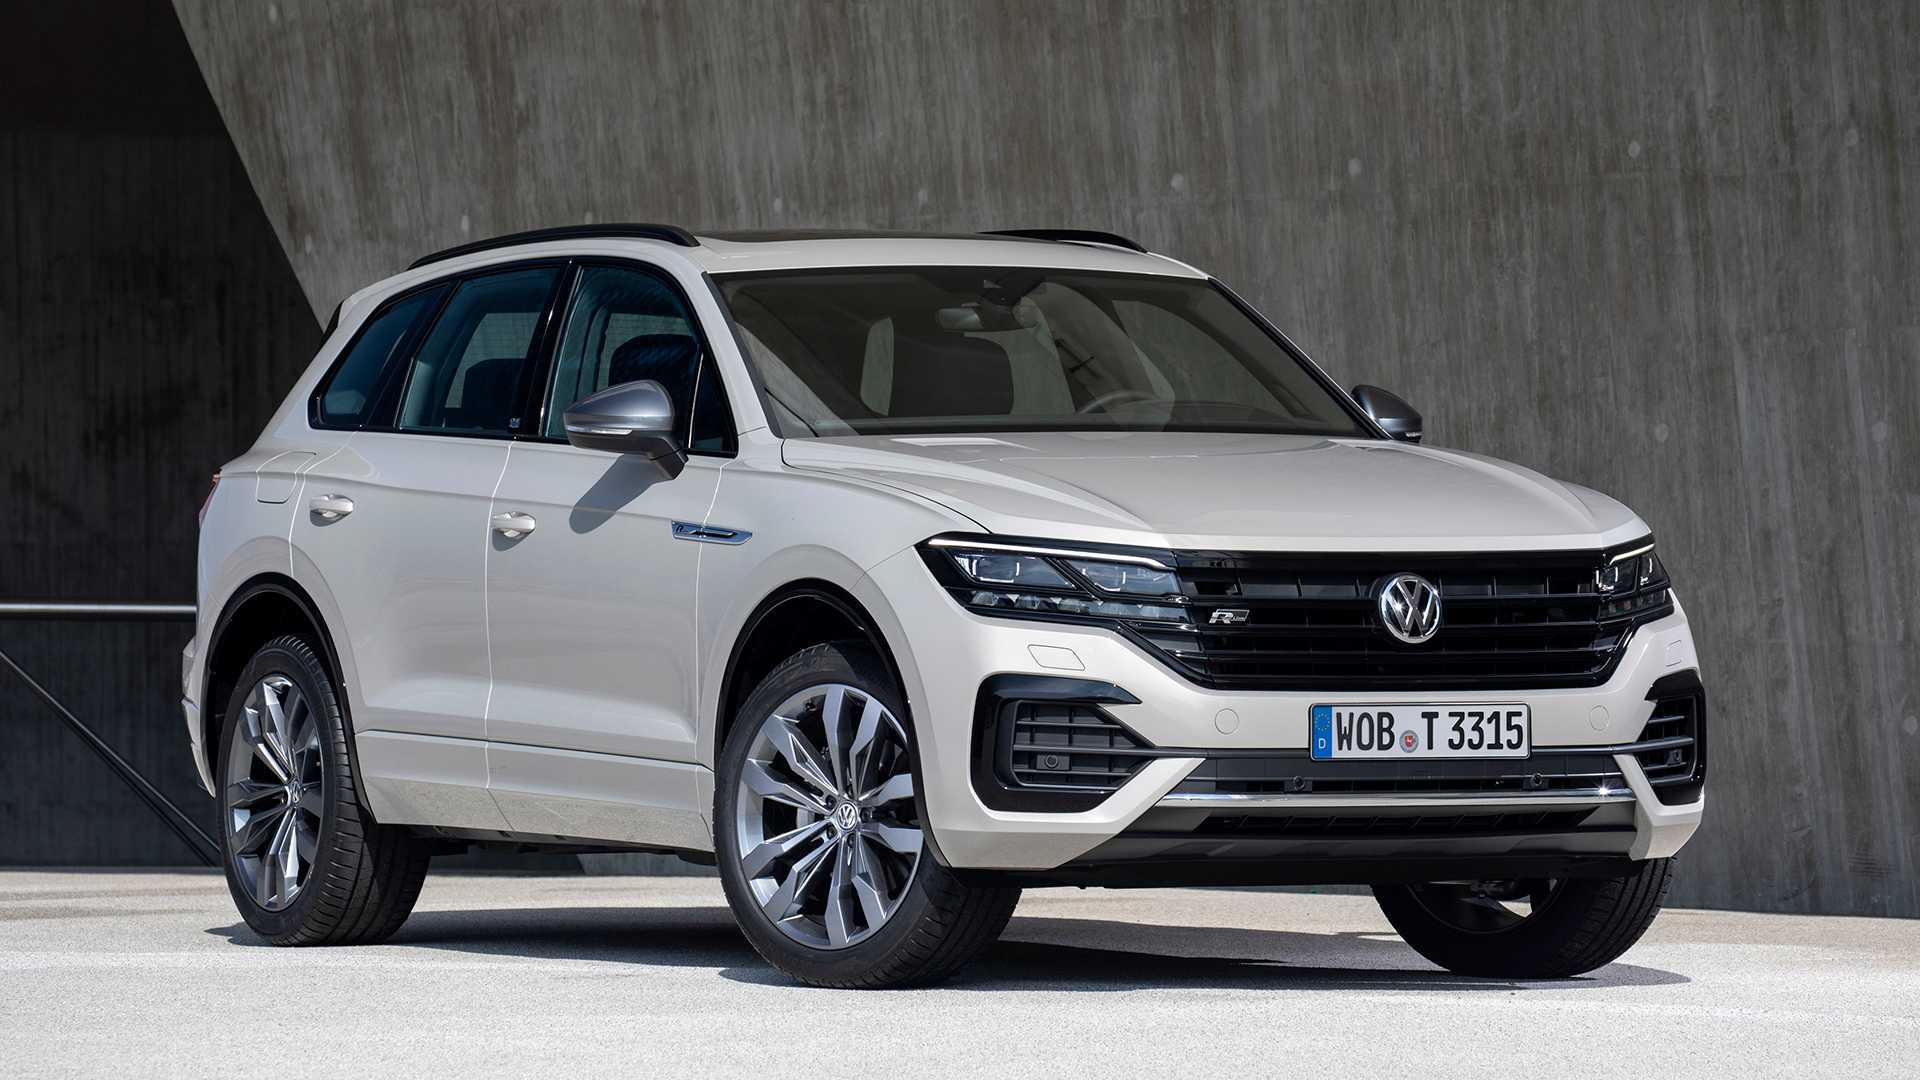 25 Best Review Volkswagen Touareg Hybrid 2020 Prices by Volkswagen Touareg Hybrid 2020